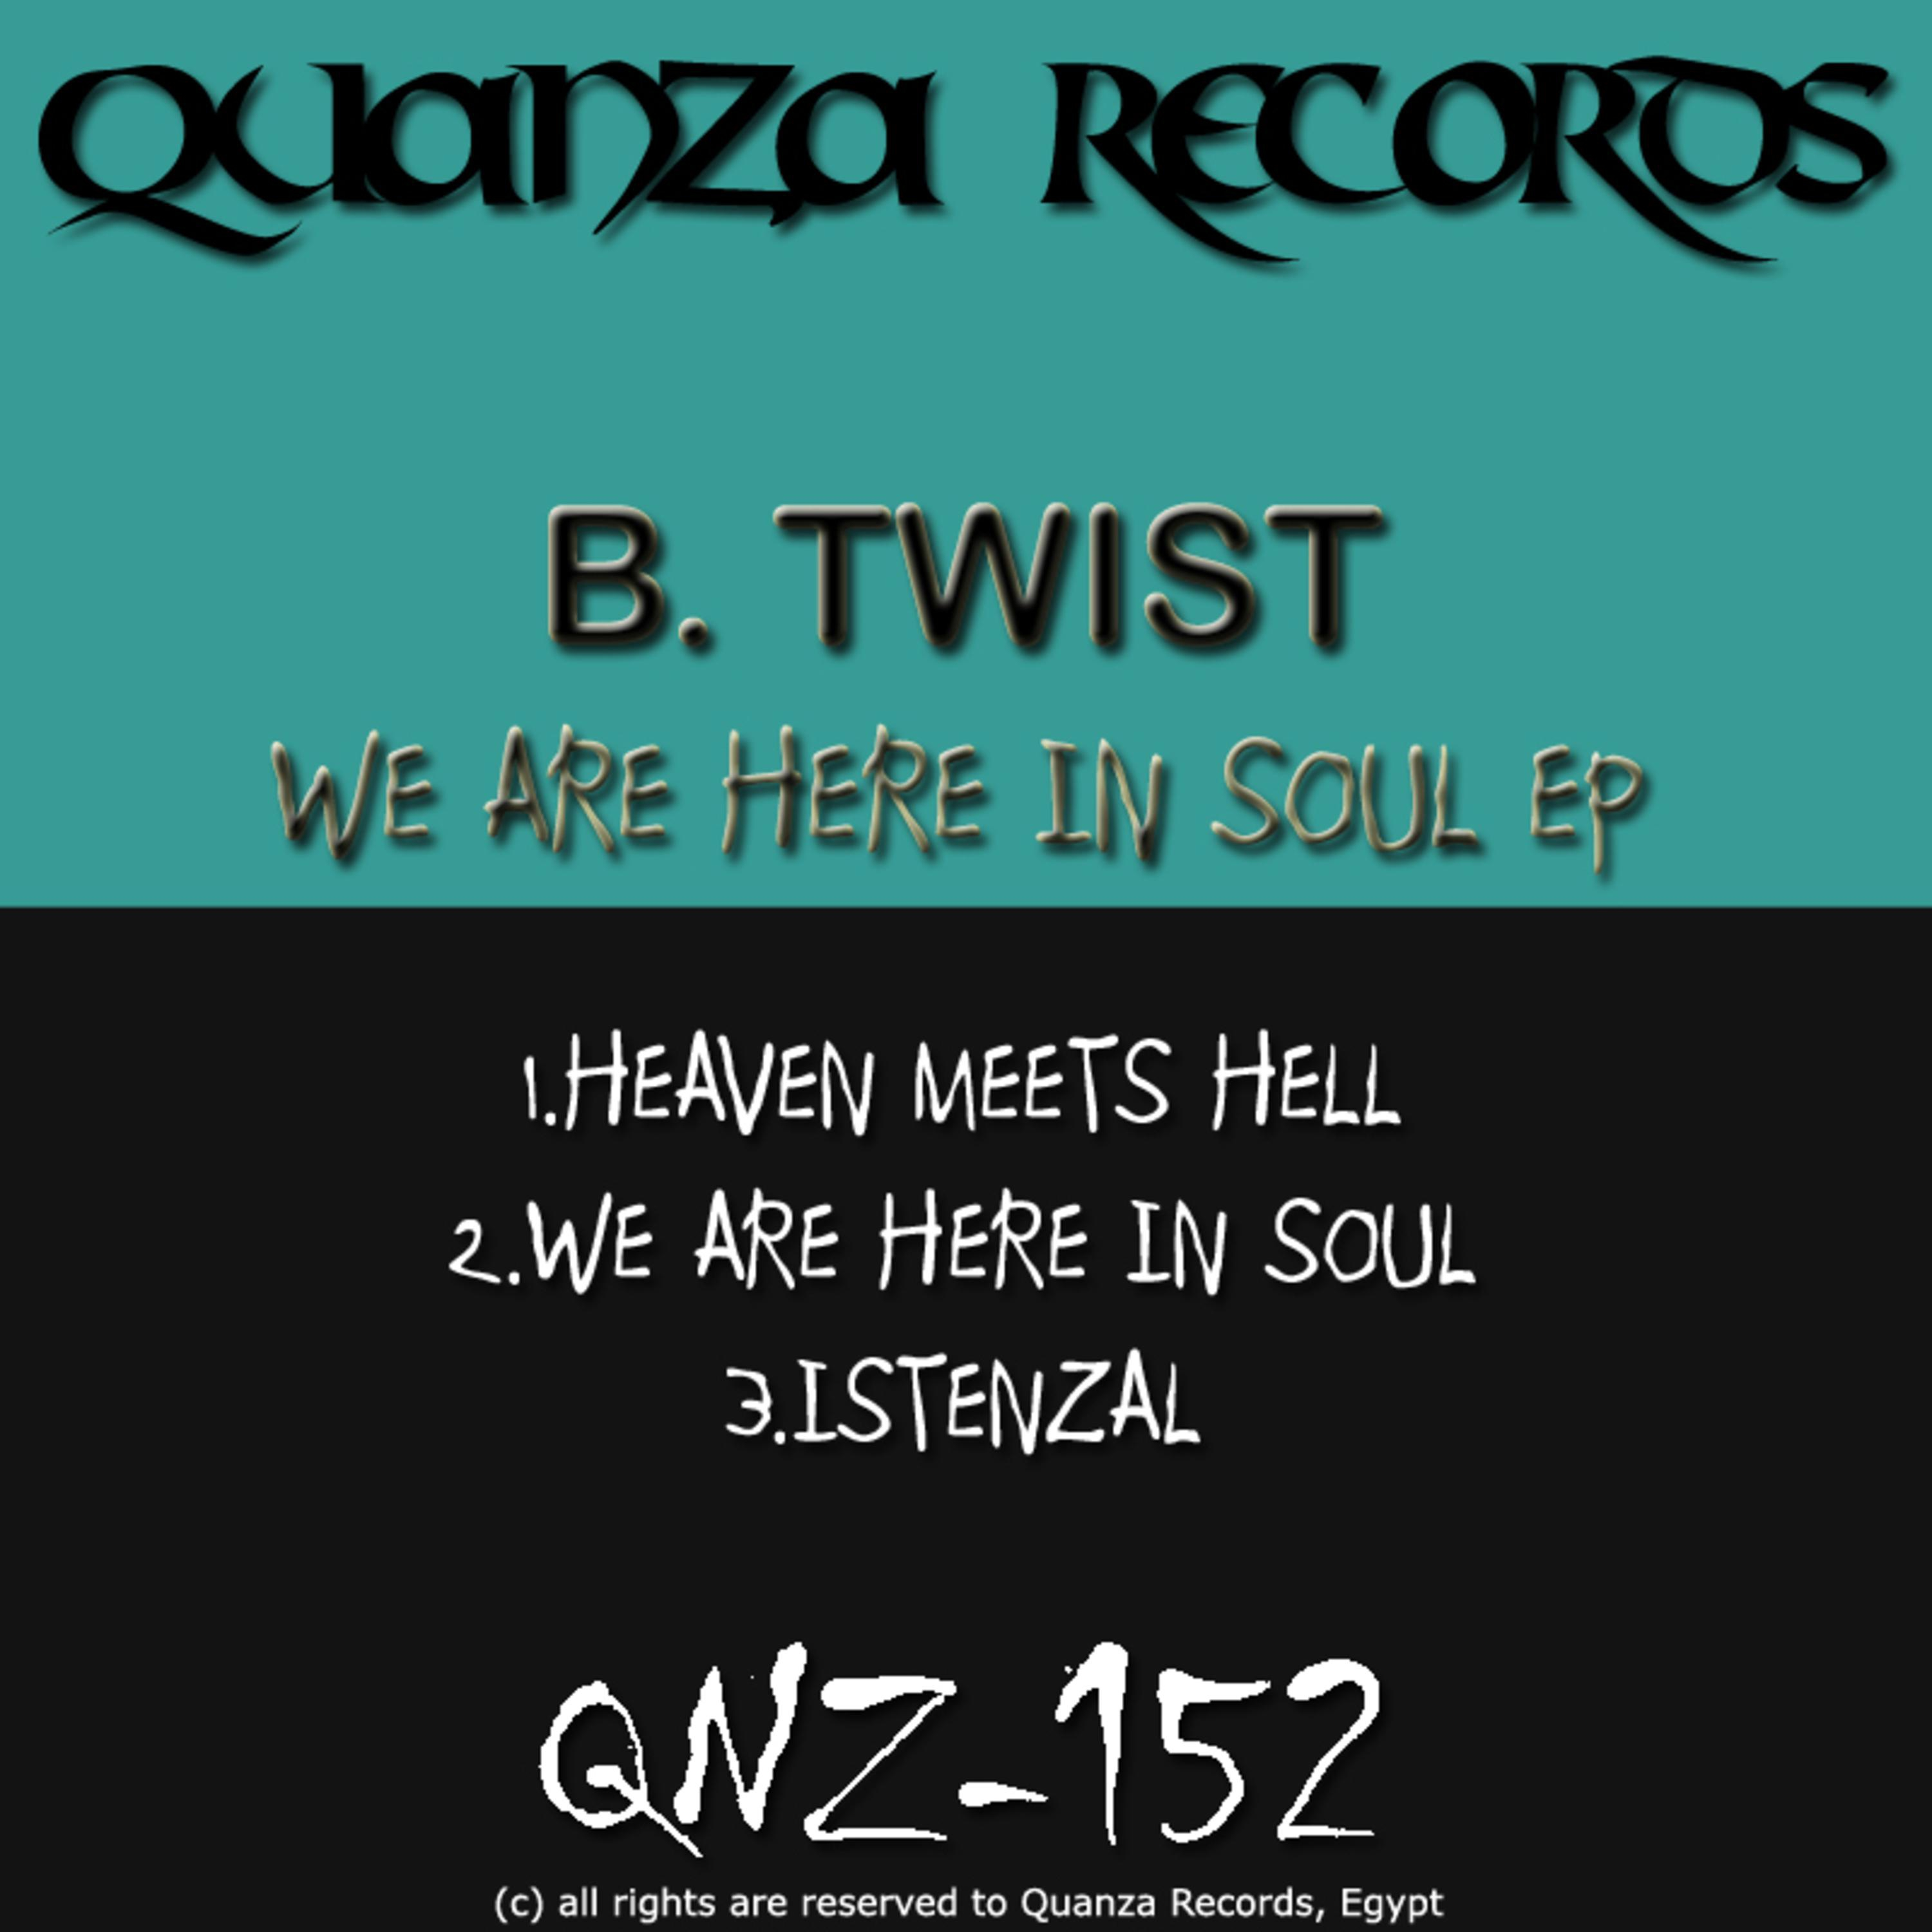 B. Twist - We Are Here In Soul (Original Mix)